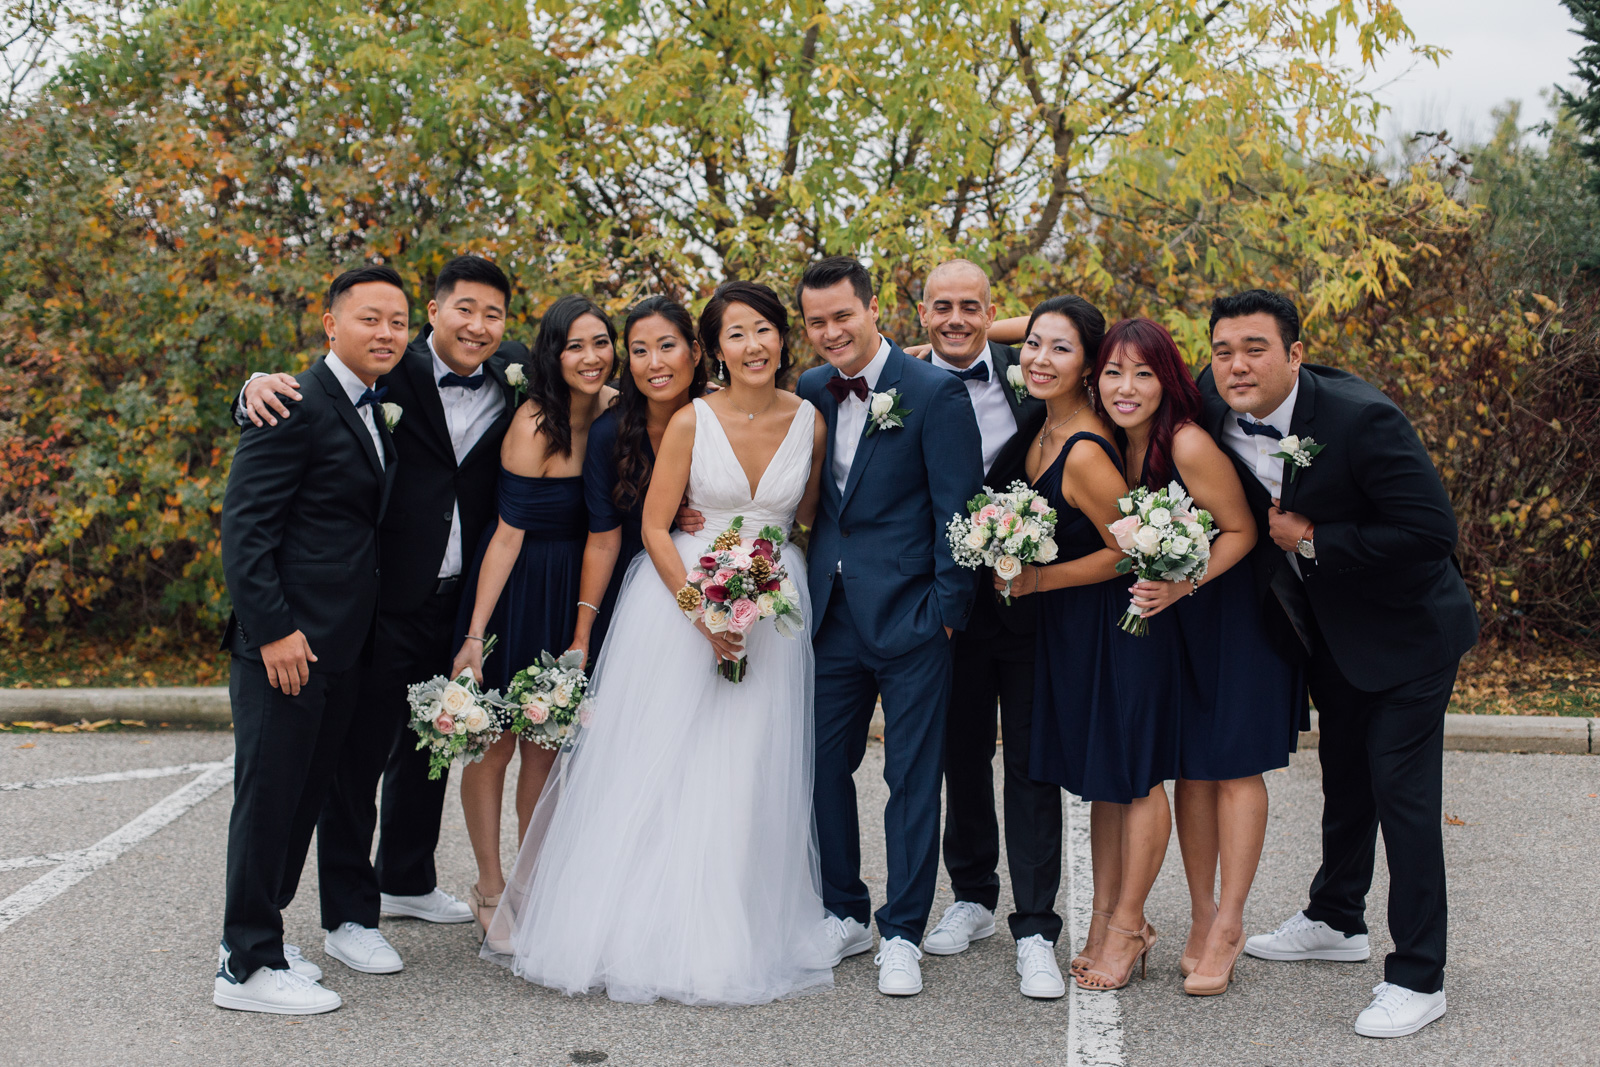 vaughn-wedding-photography-images-by-nick-driver-and-sath-arul-of-artanis-collective_09.jpg